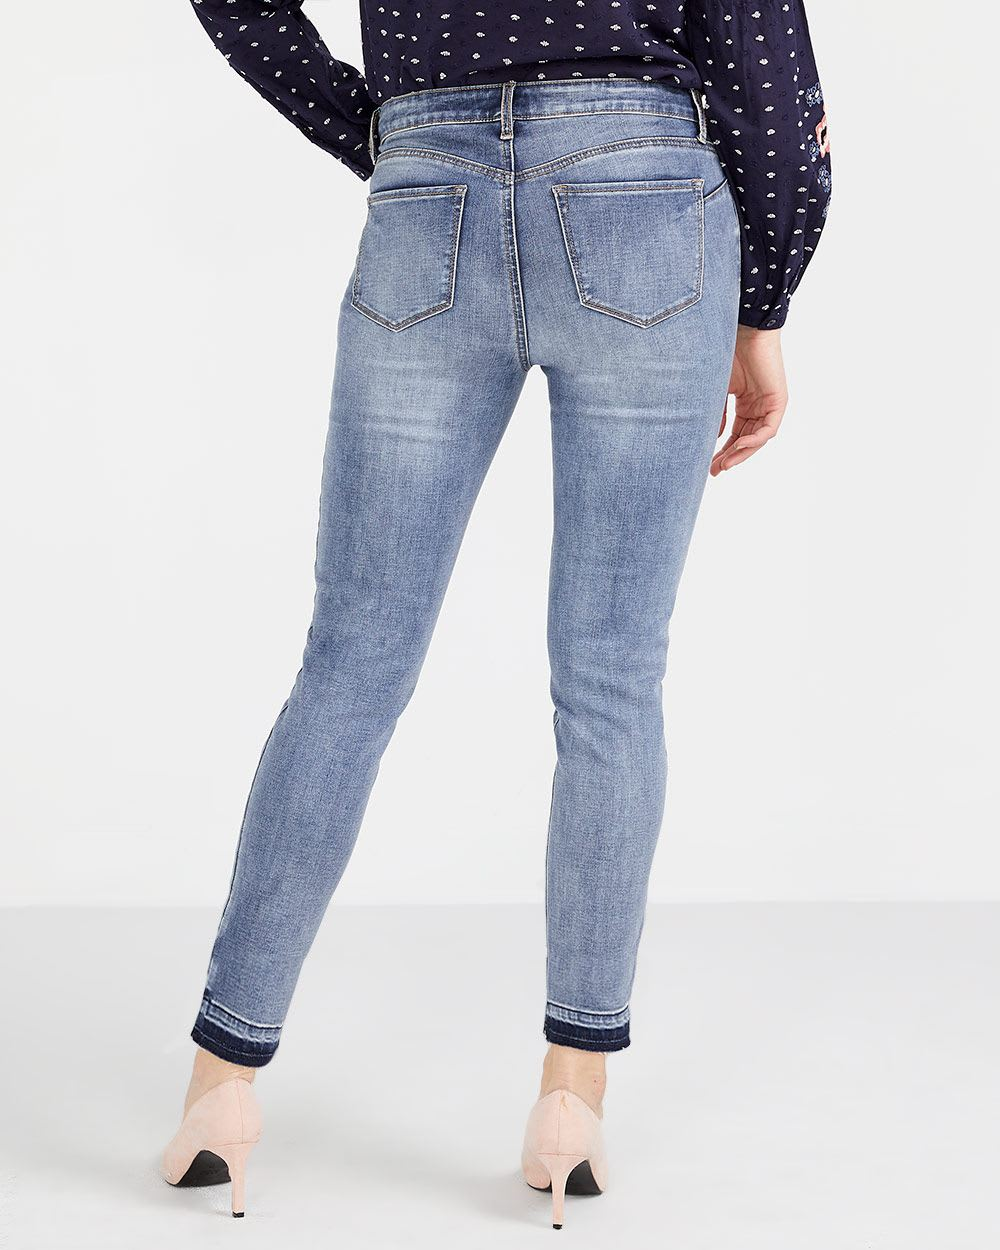 The Petite Released Hem Sculpting Ankle Jeans